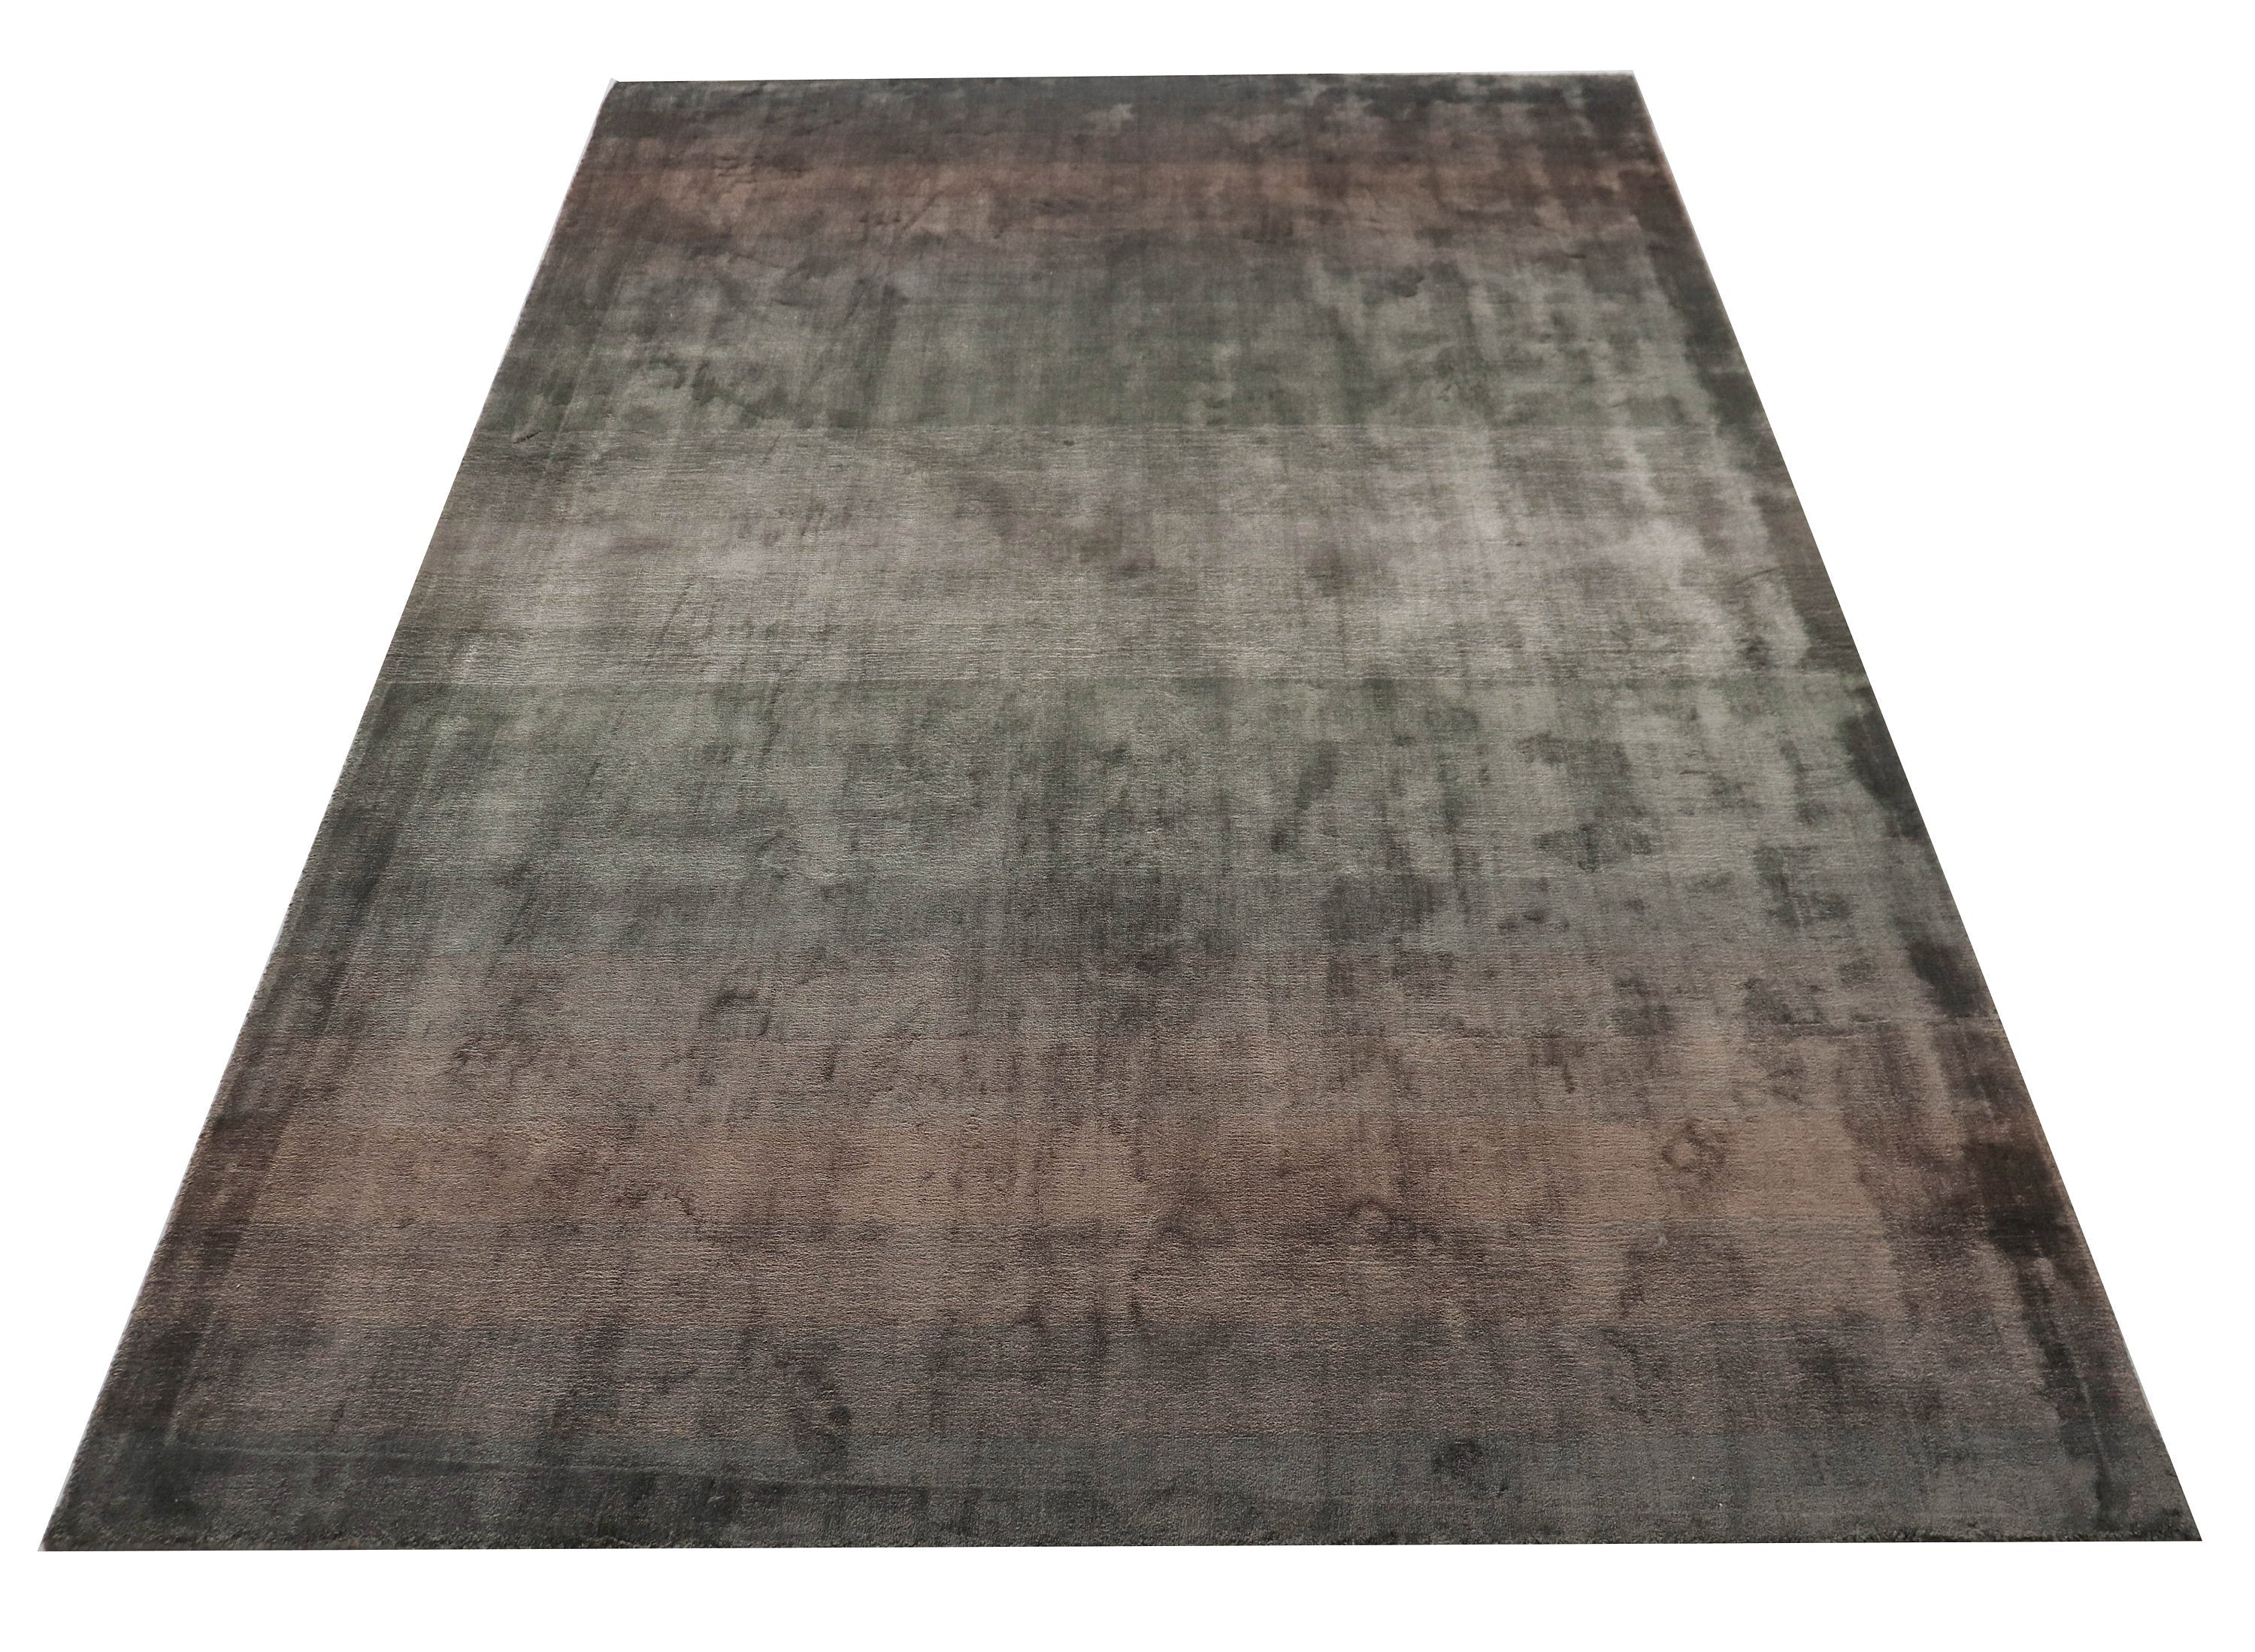 Shades of Brown Synthetic Wool trippy Area Rug Oriental Living Room 5x7 Rug  ≡Rustic antique Decor ≡ Office Rug ≡ Turkish Faded Rug  60729